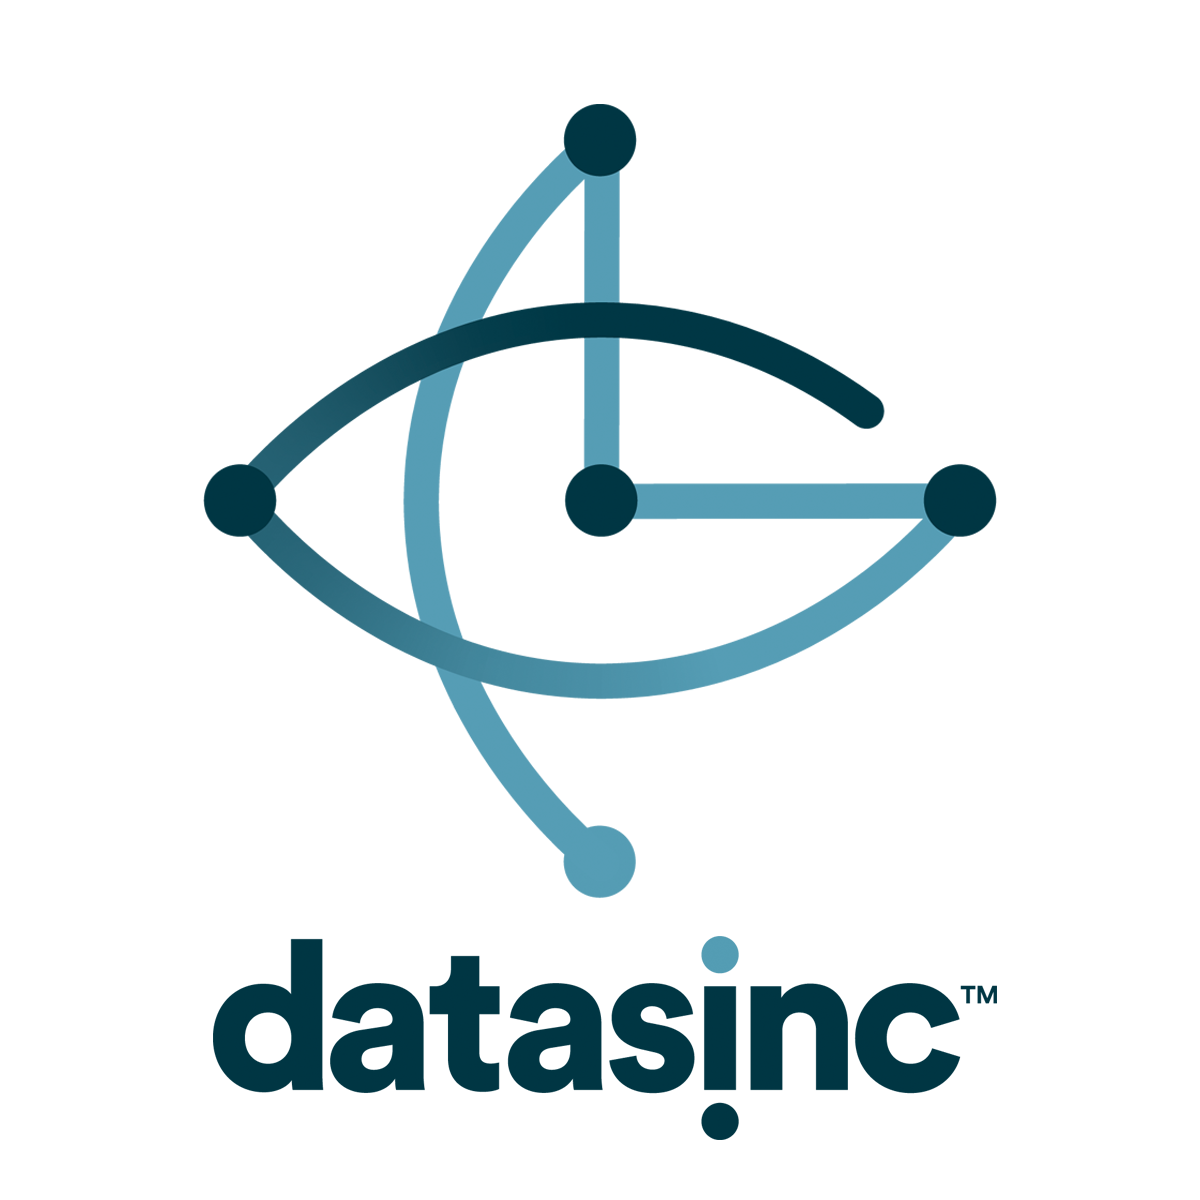 DATASINC - Our visualization and analytics platform helps you understand what your data means and tracks performance.